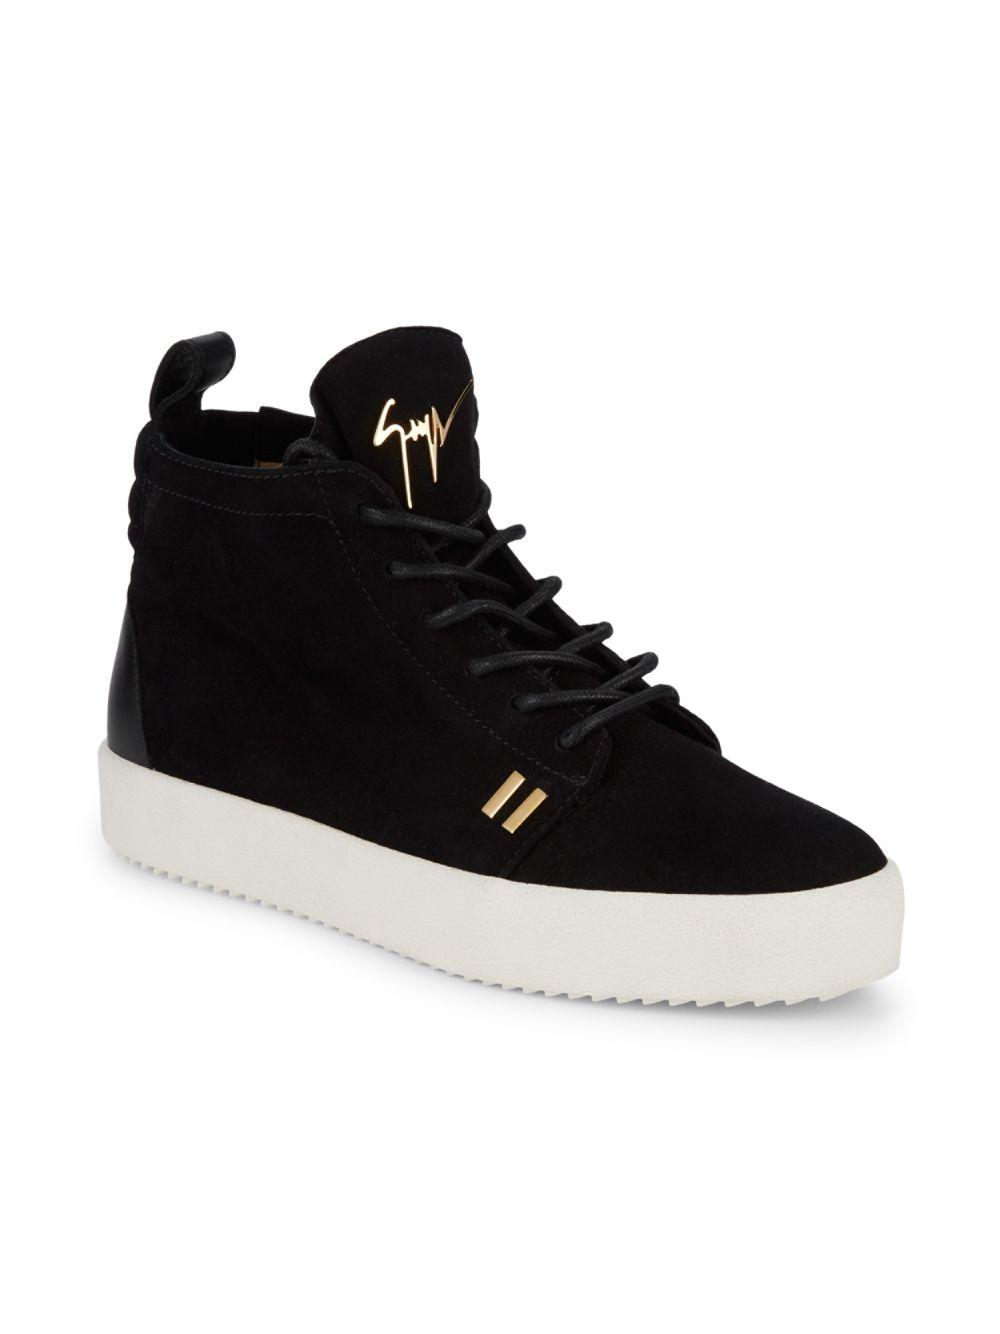 9a93a83855c Lyst - Giuseppe Zanotti Classic Suede High-top Sneakers in Black for Men